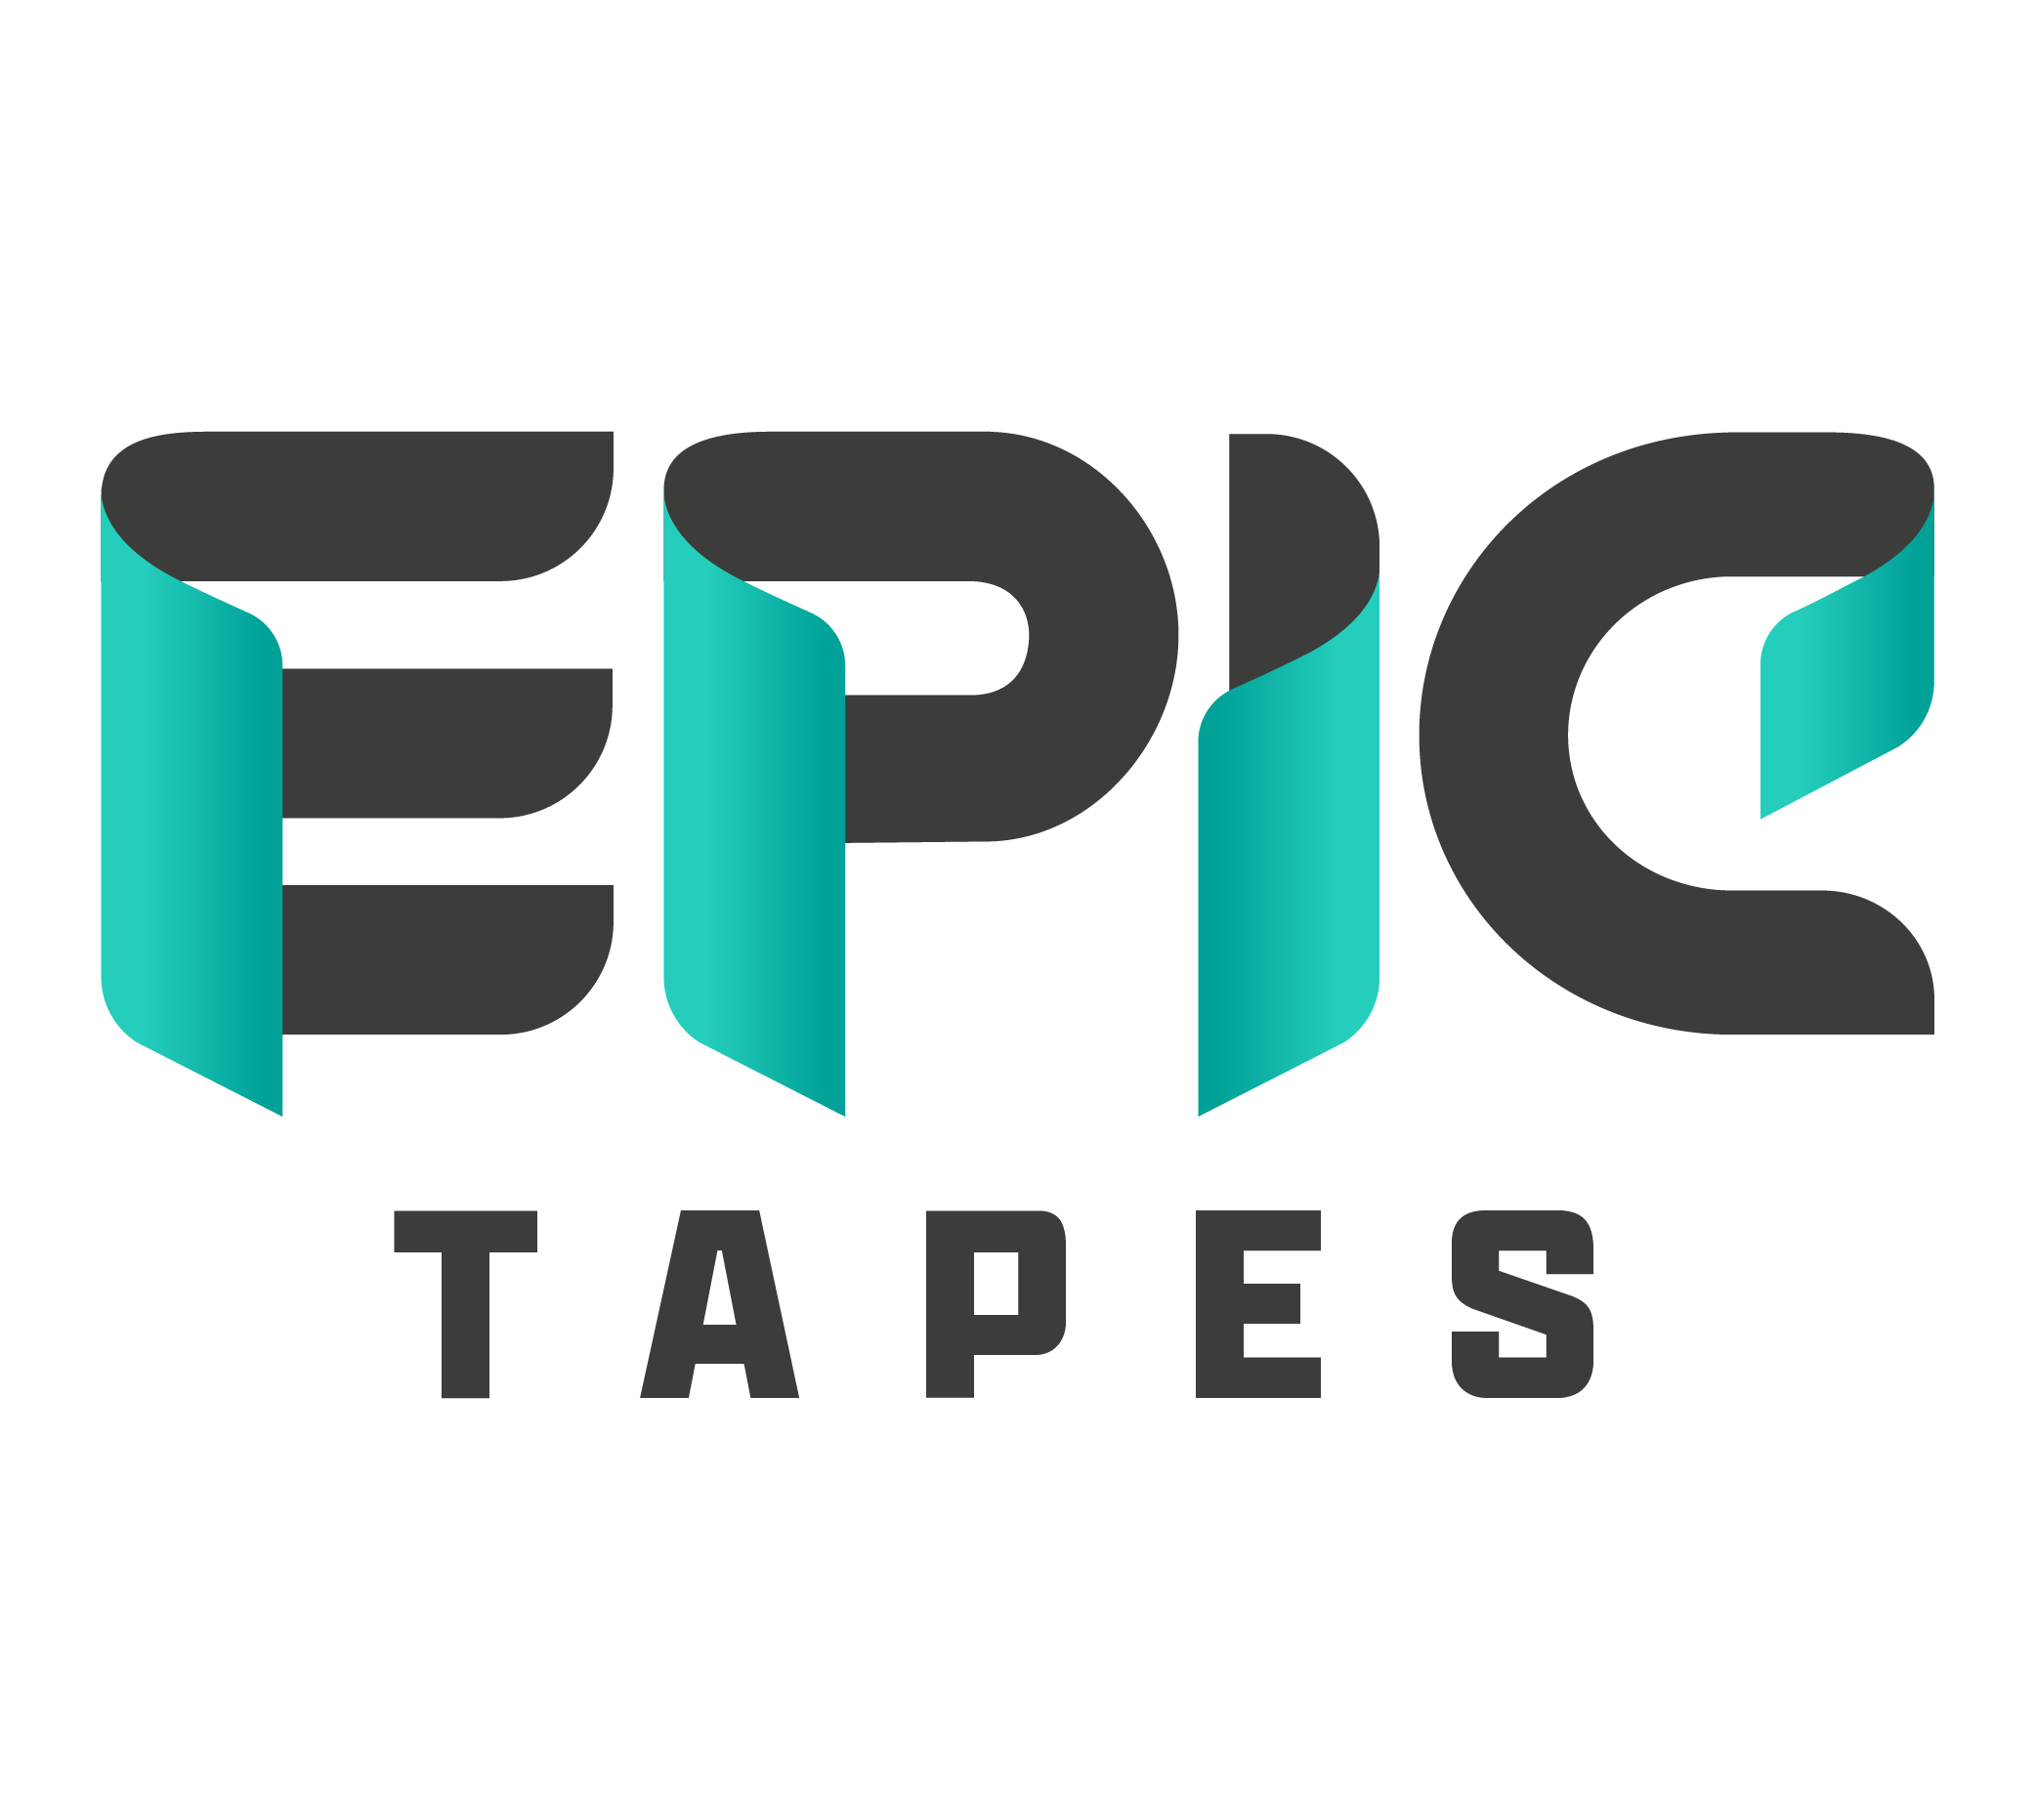 EPIC Tapes